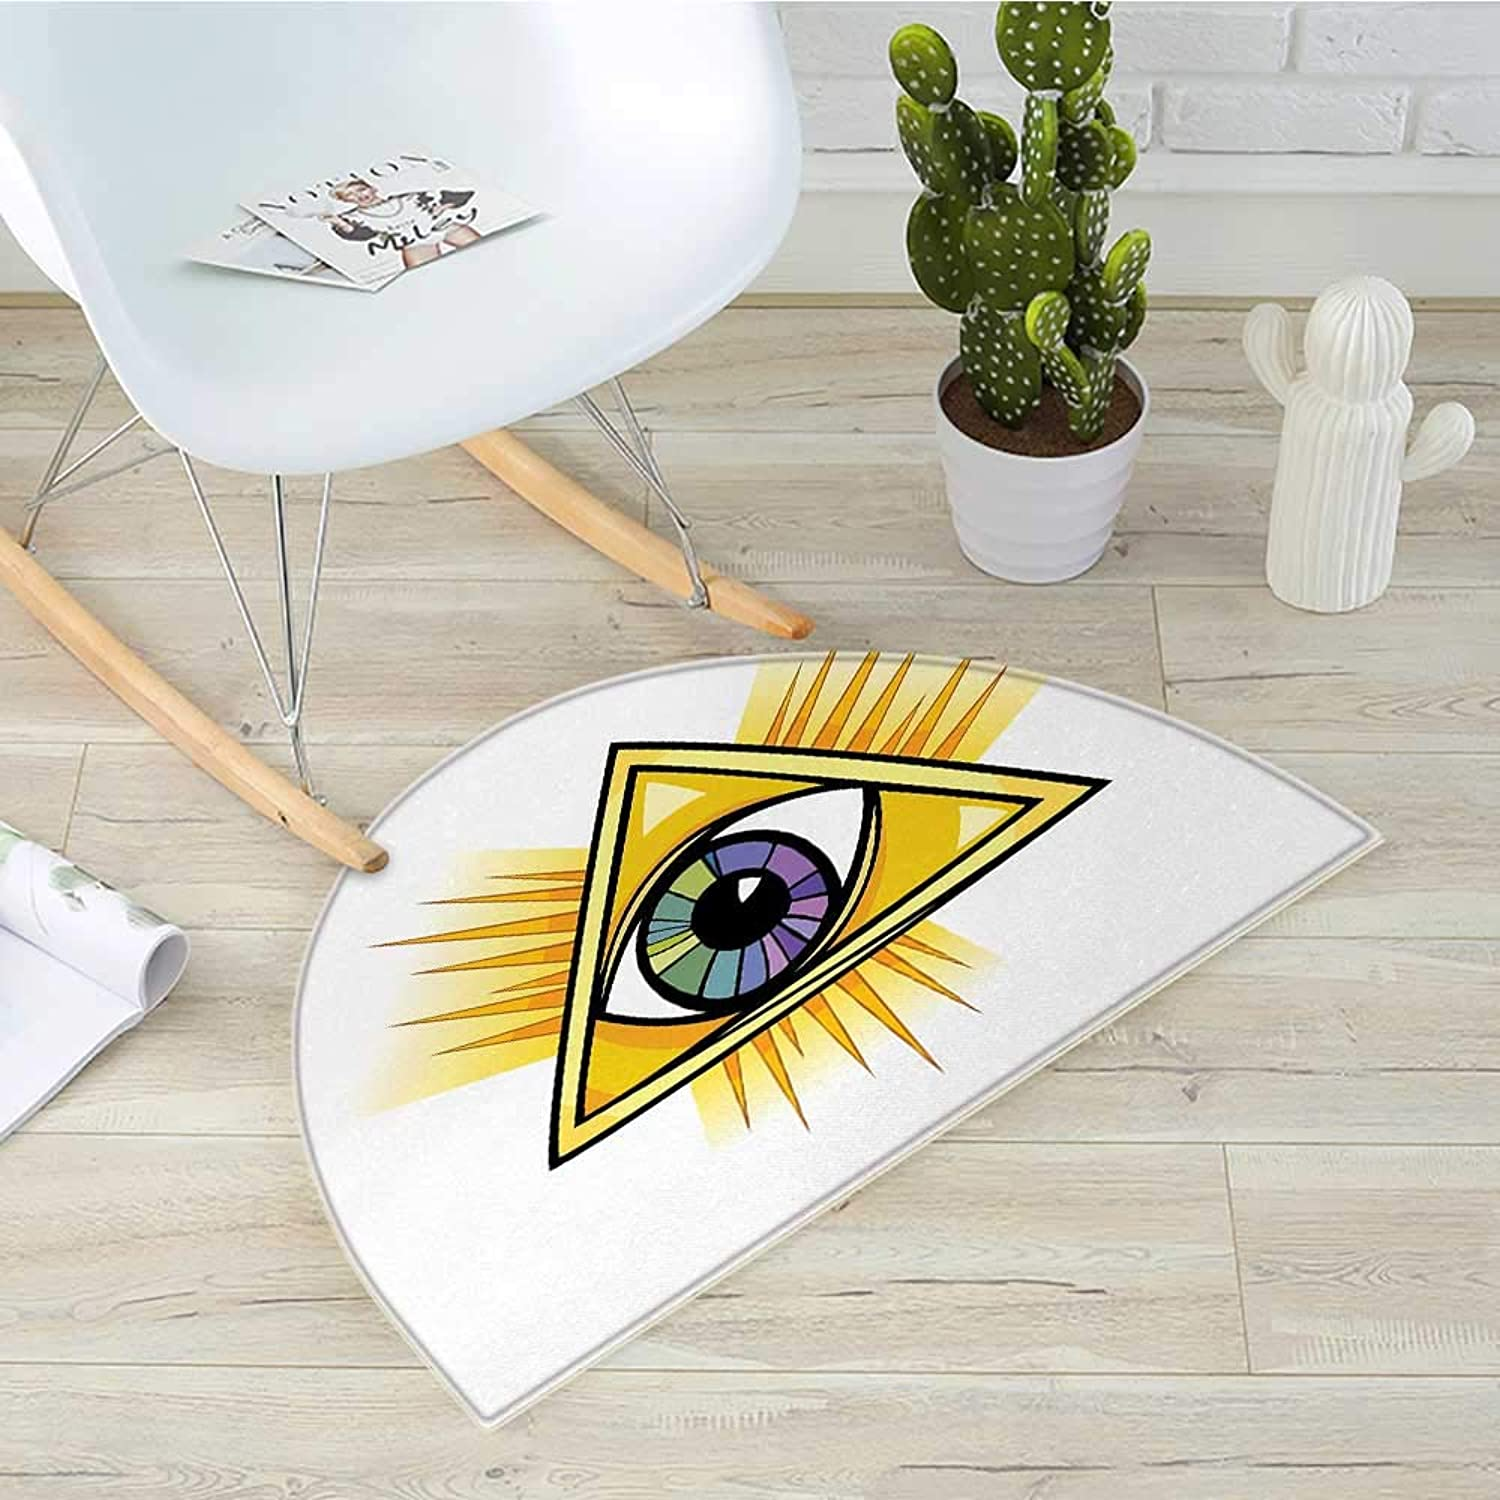 Eye Semicircular Cushioncolorful Mystical Eye in a Yellow Triangle Truth Knowledge and Wisdom Themes Entry Door Mat H 31.5  xD 47.2  Marigold Purple Green